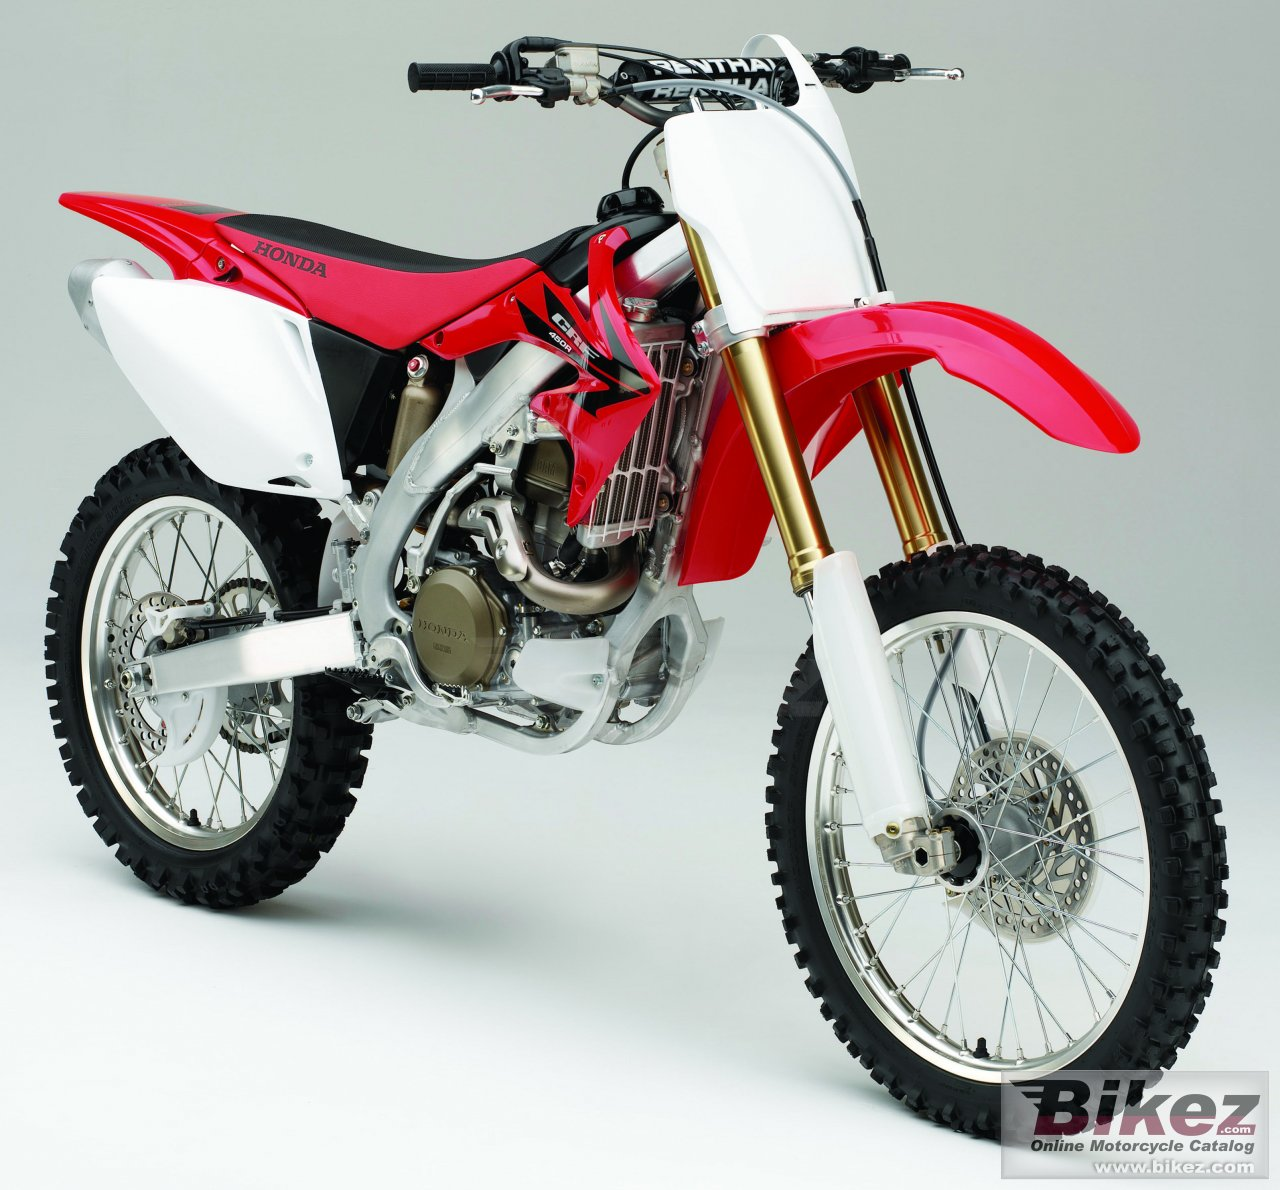 Big Honda crf 450 r picture and wallpaper from Bikez.com